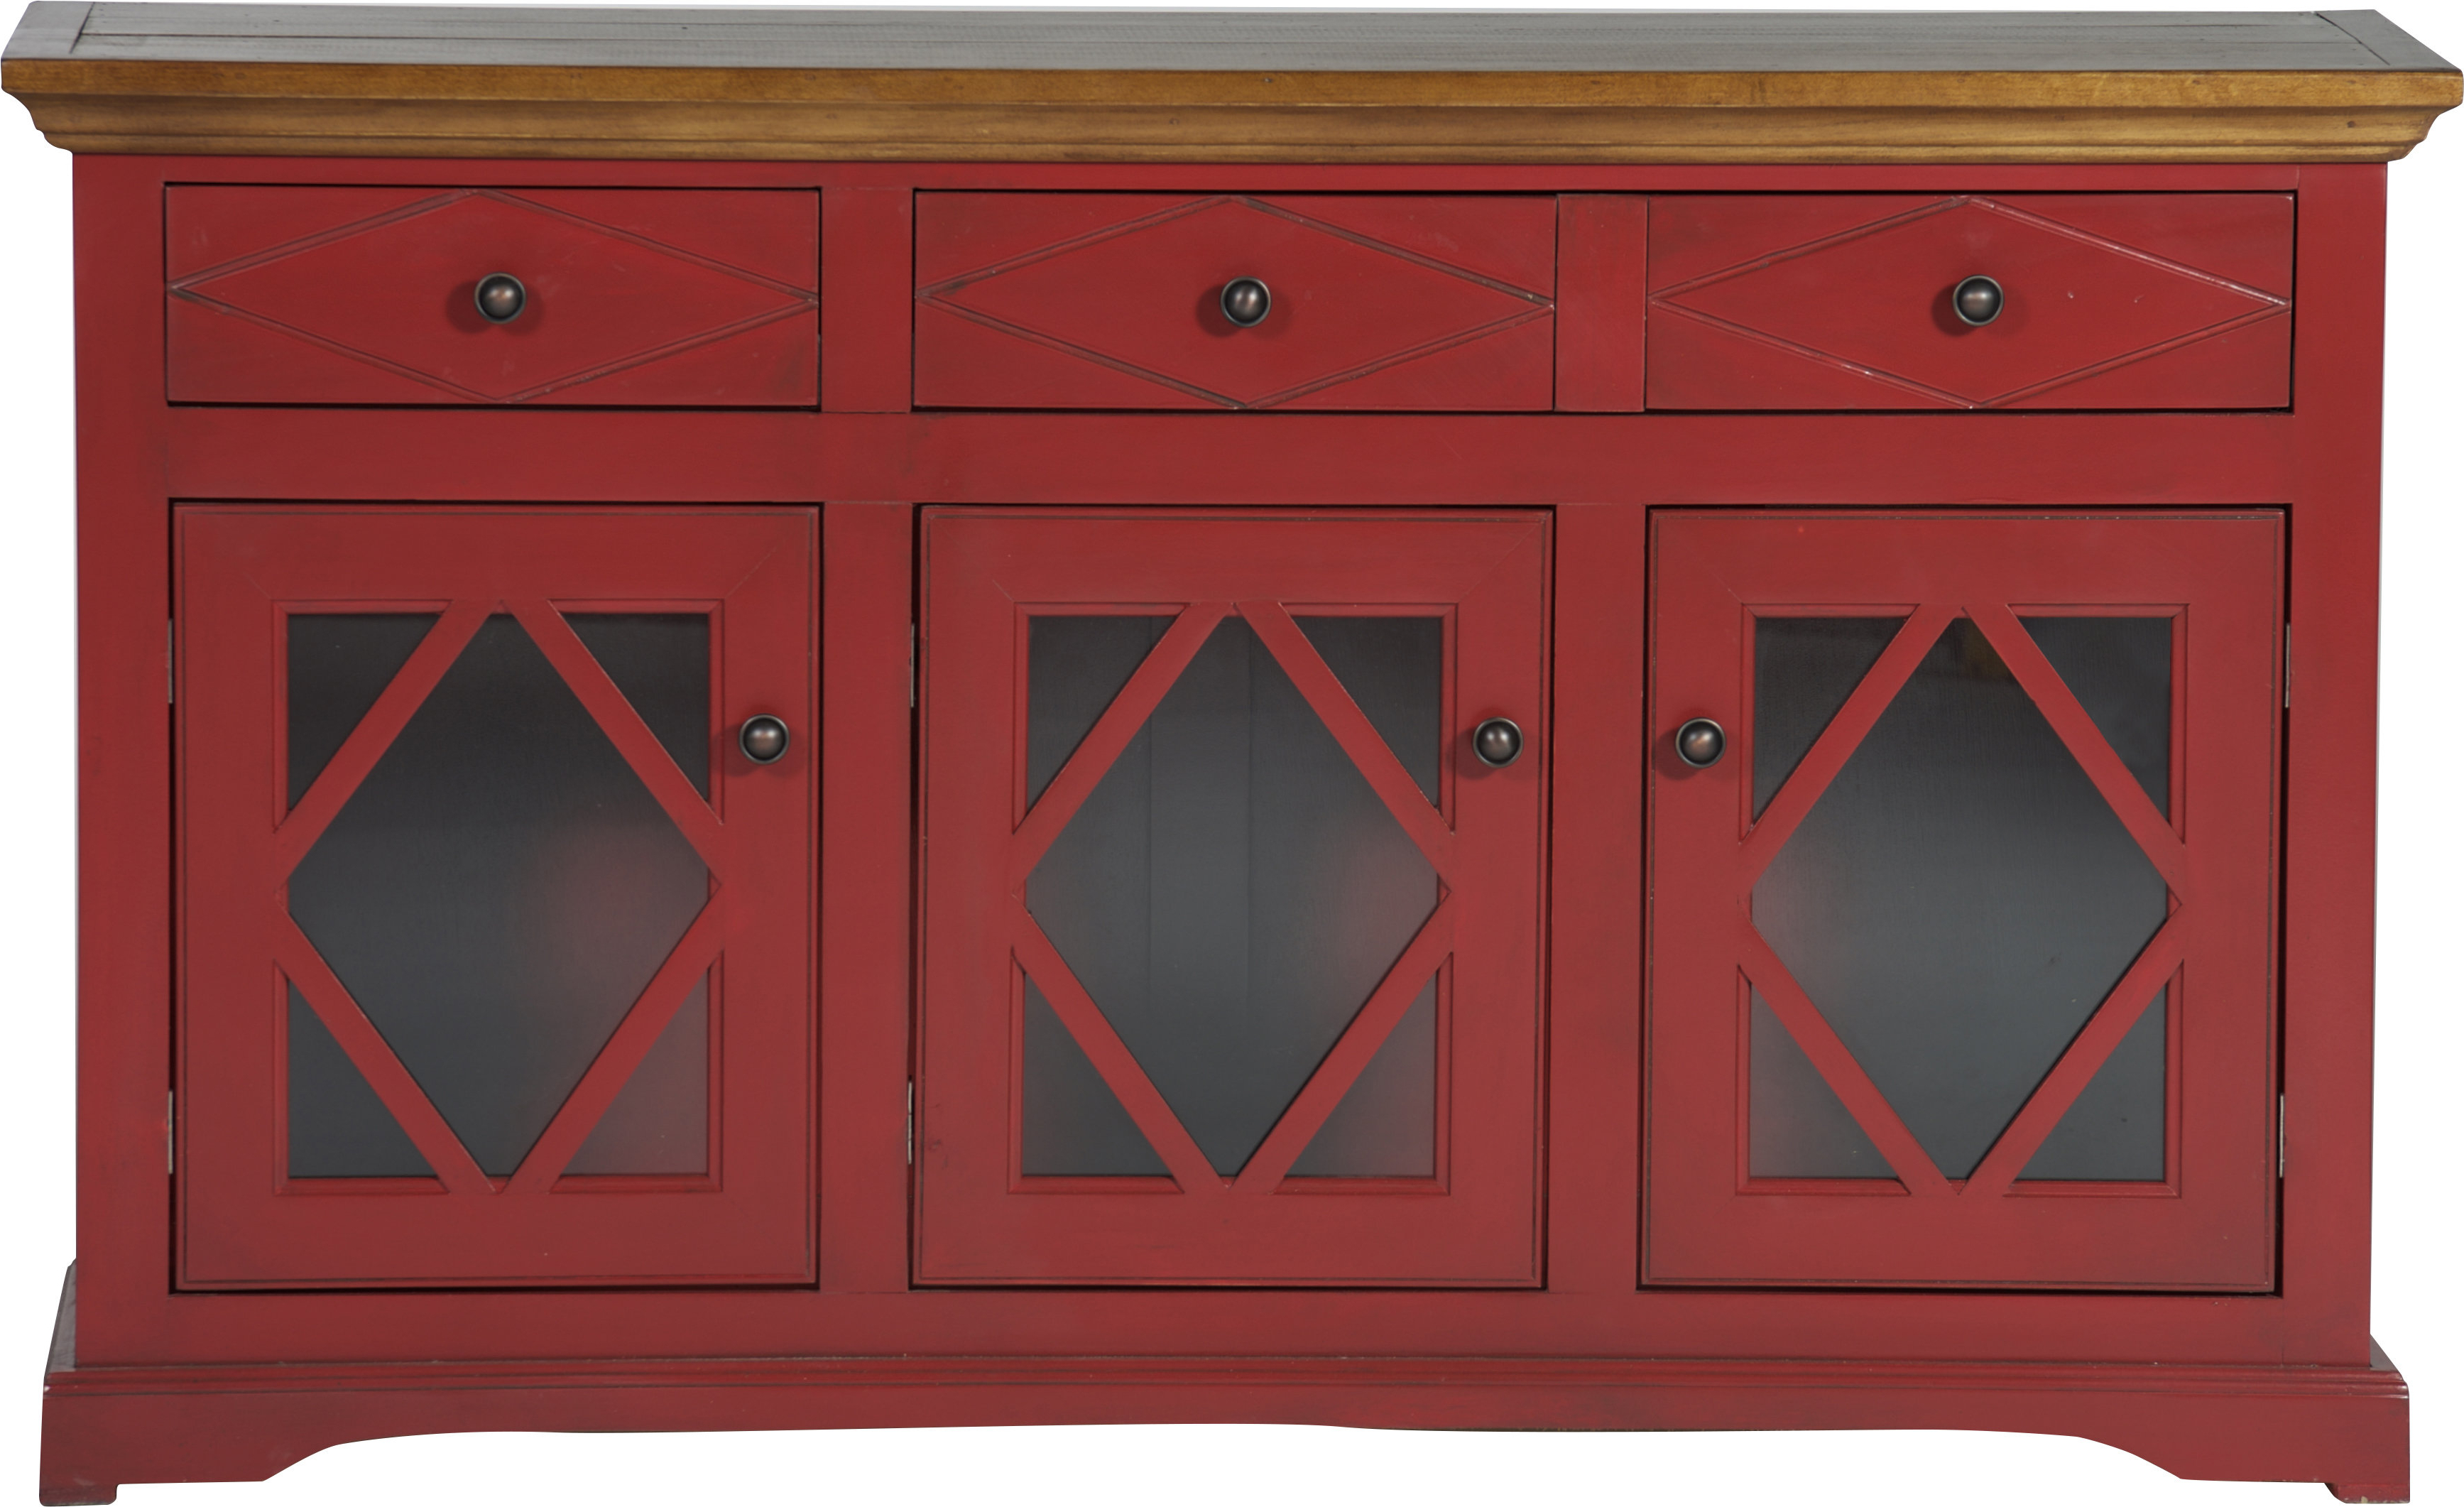 Widely Used Velazco Sideboards Intended For Darby Home Co Velazco Sideboard (View 20 of 20)